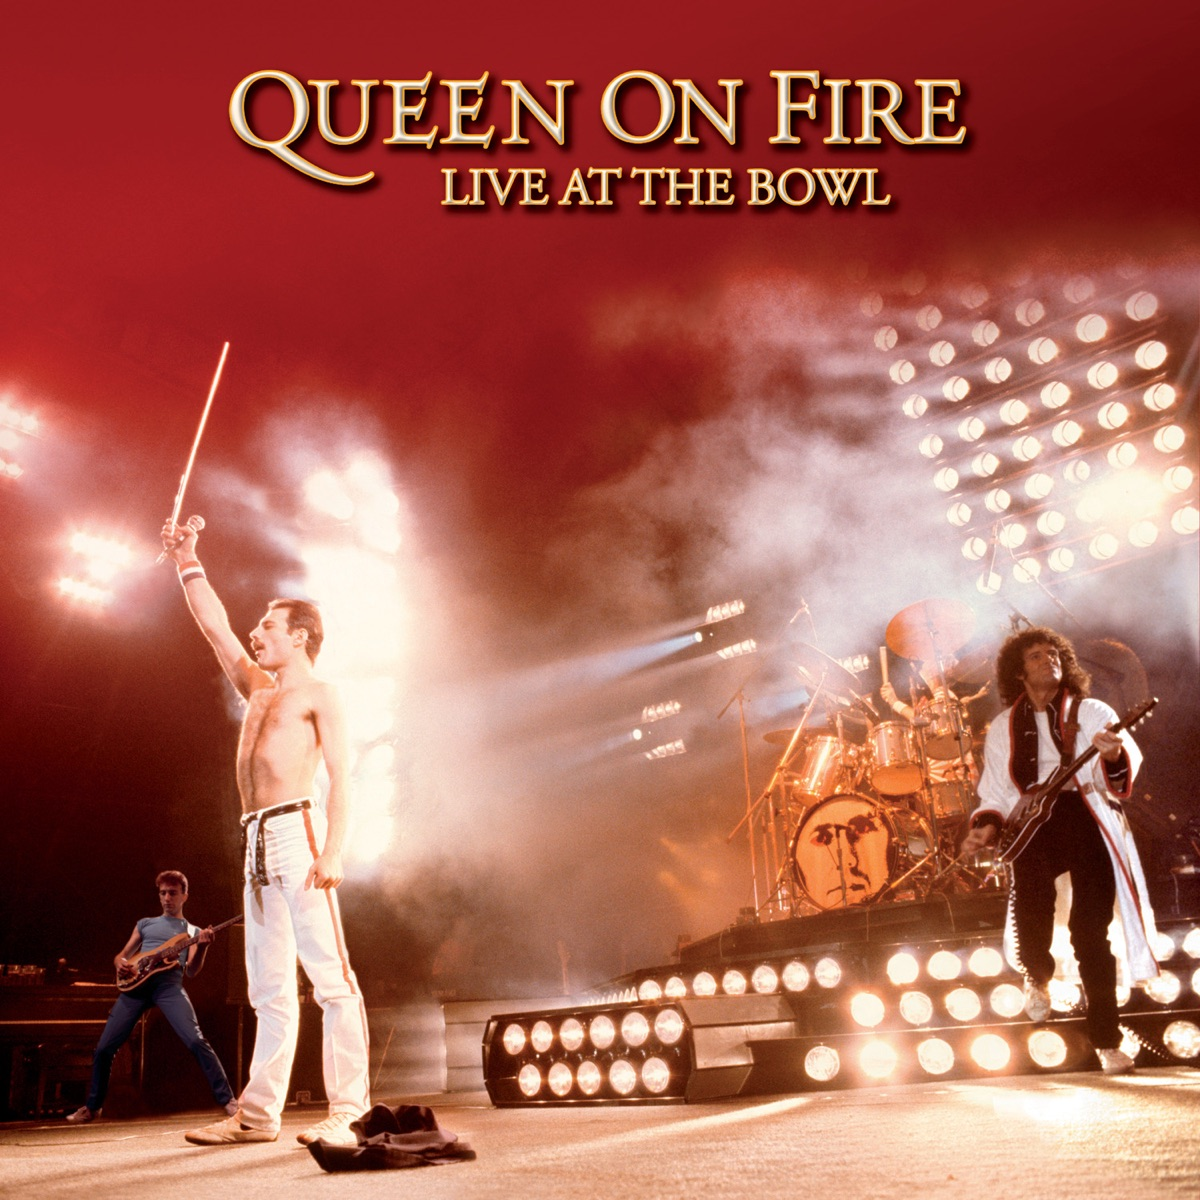 On Fire Live at the Bowl Live at Milton Keynes Bowl June 1982 Queen CD cover